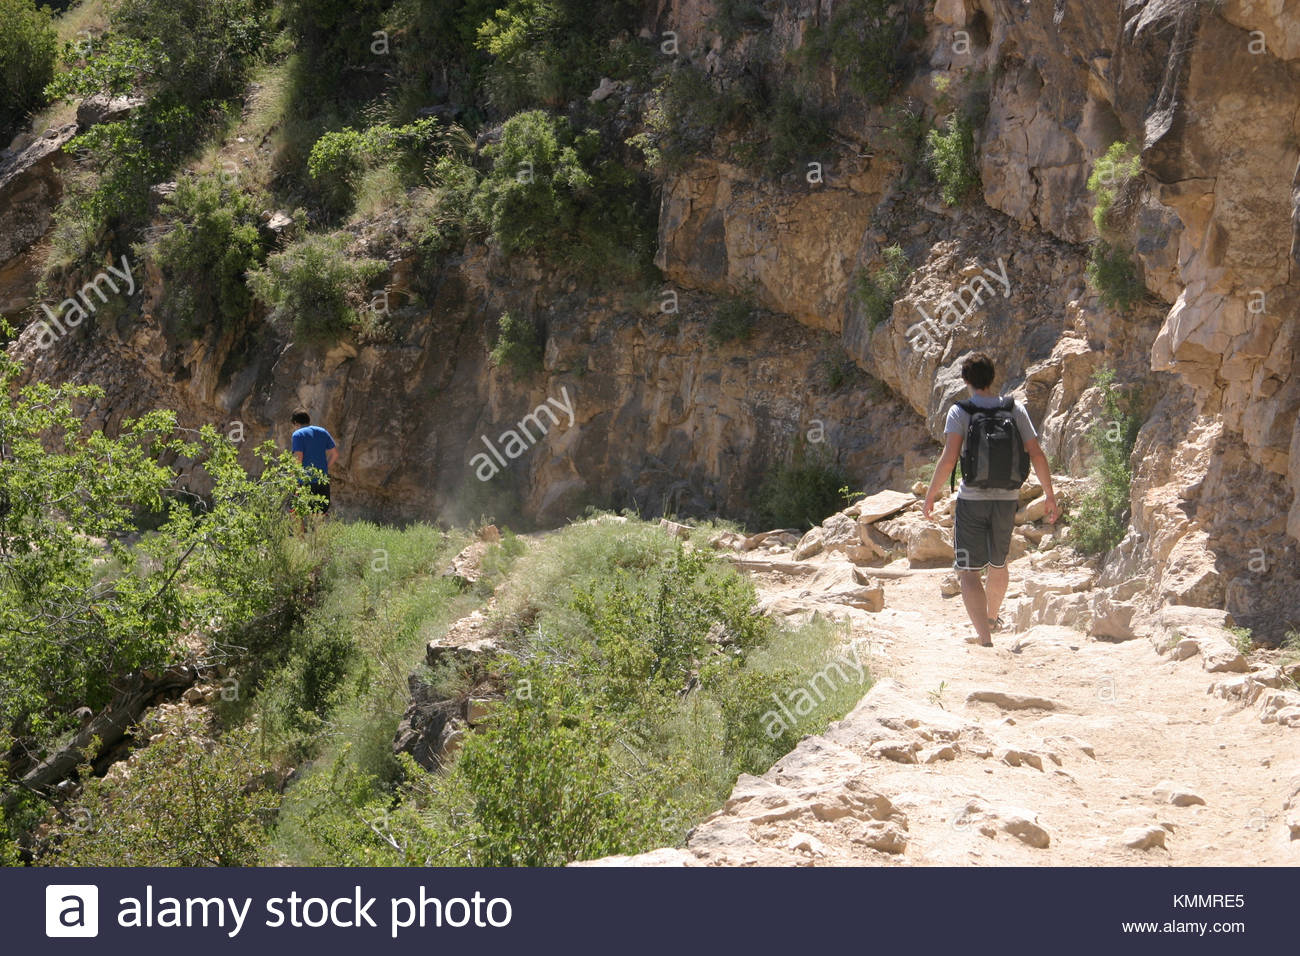 Hiking in the Grand Canyon - Stock Image